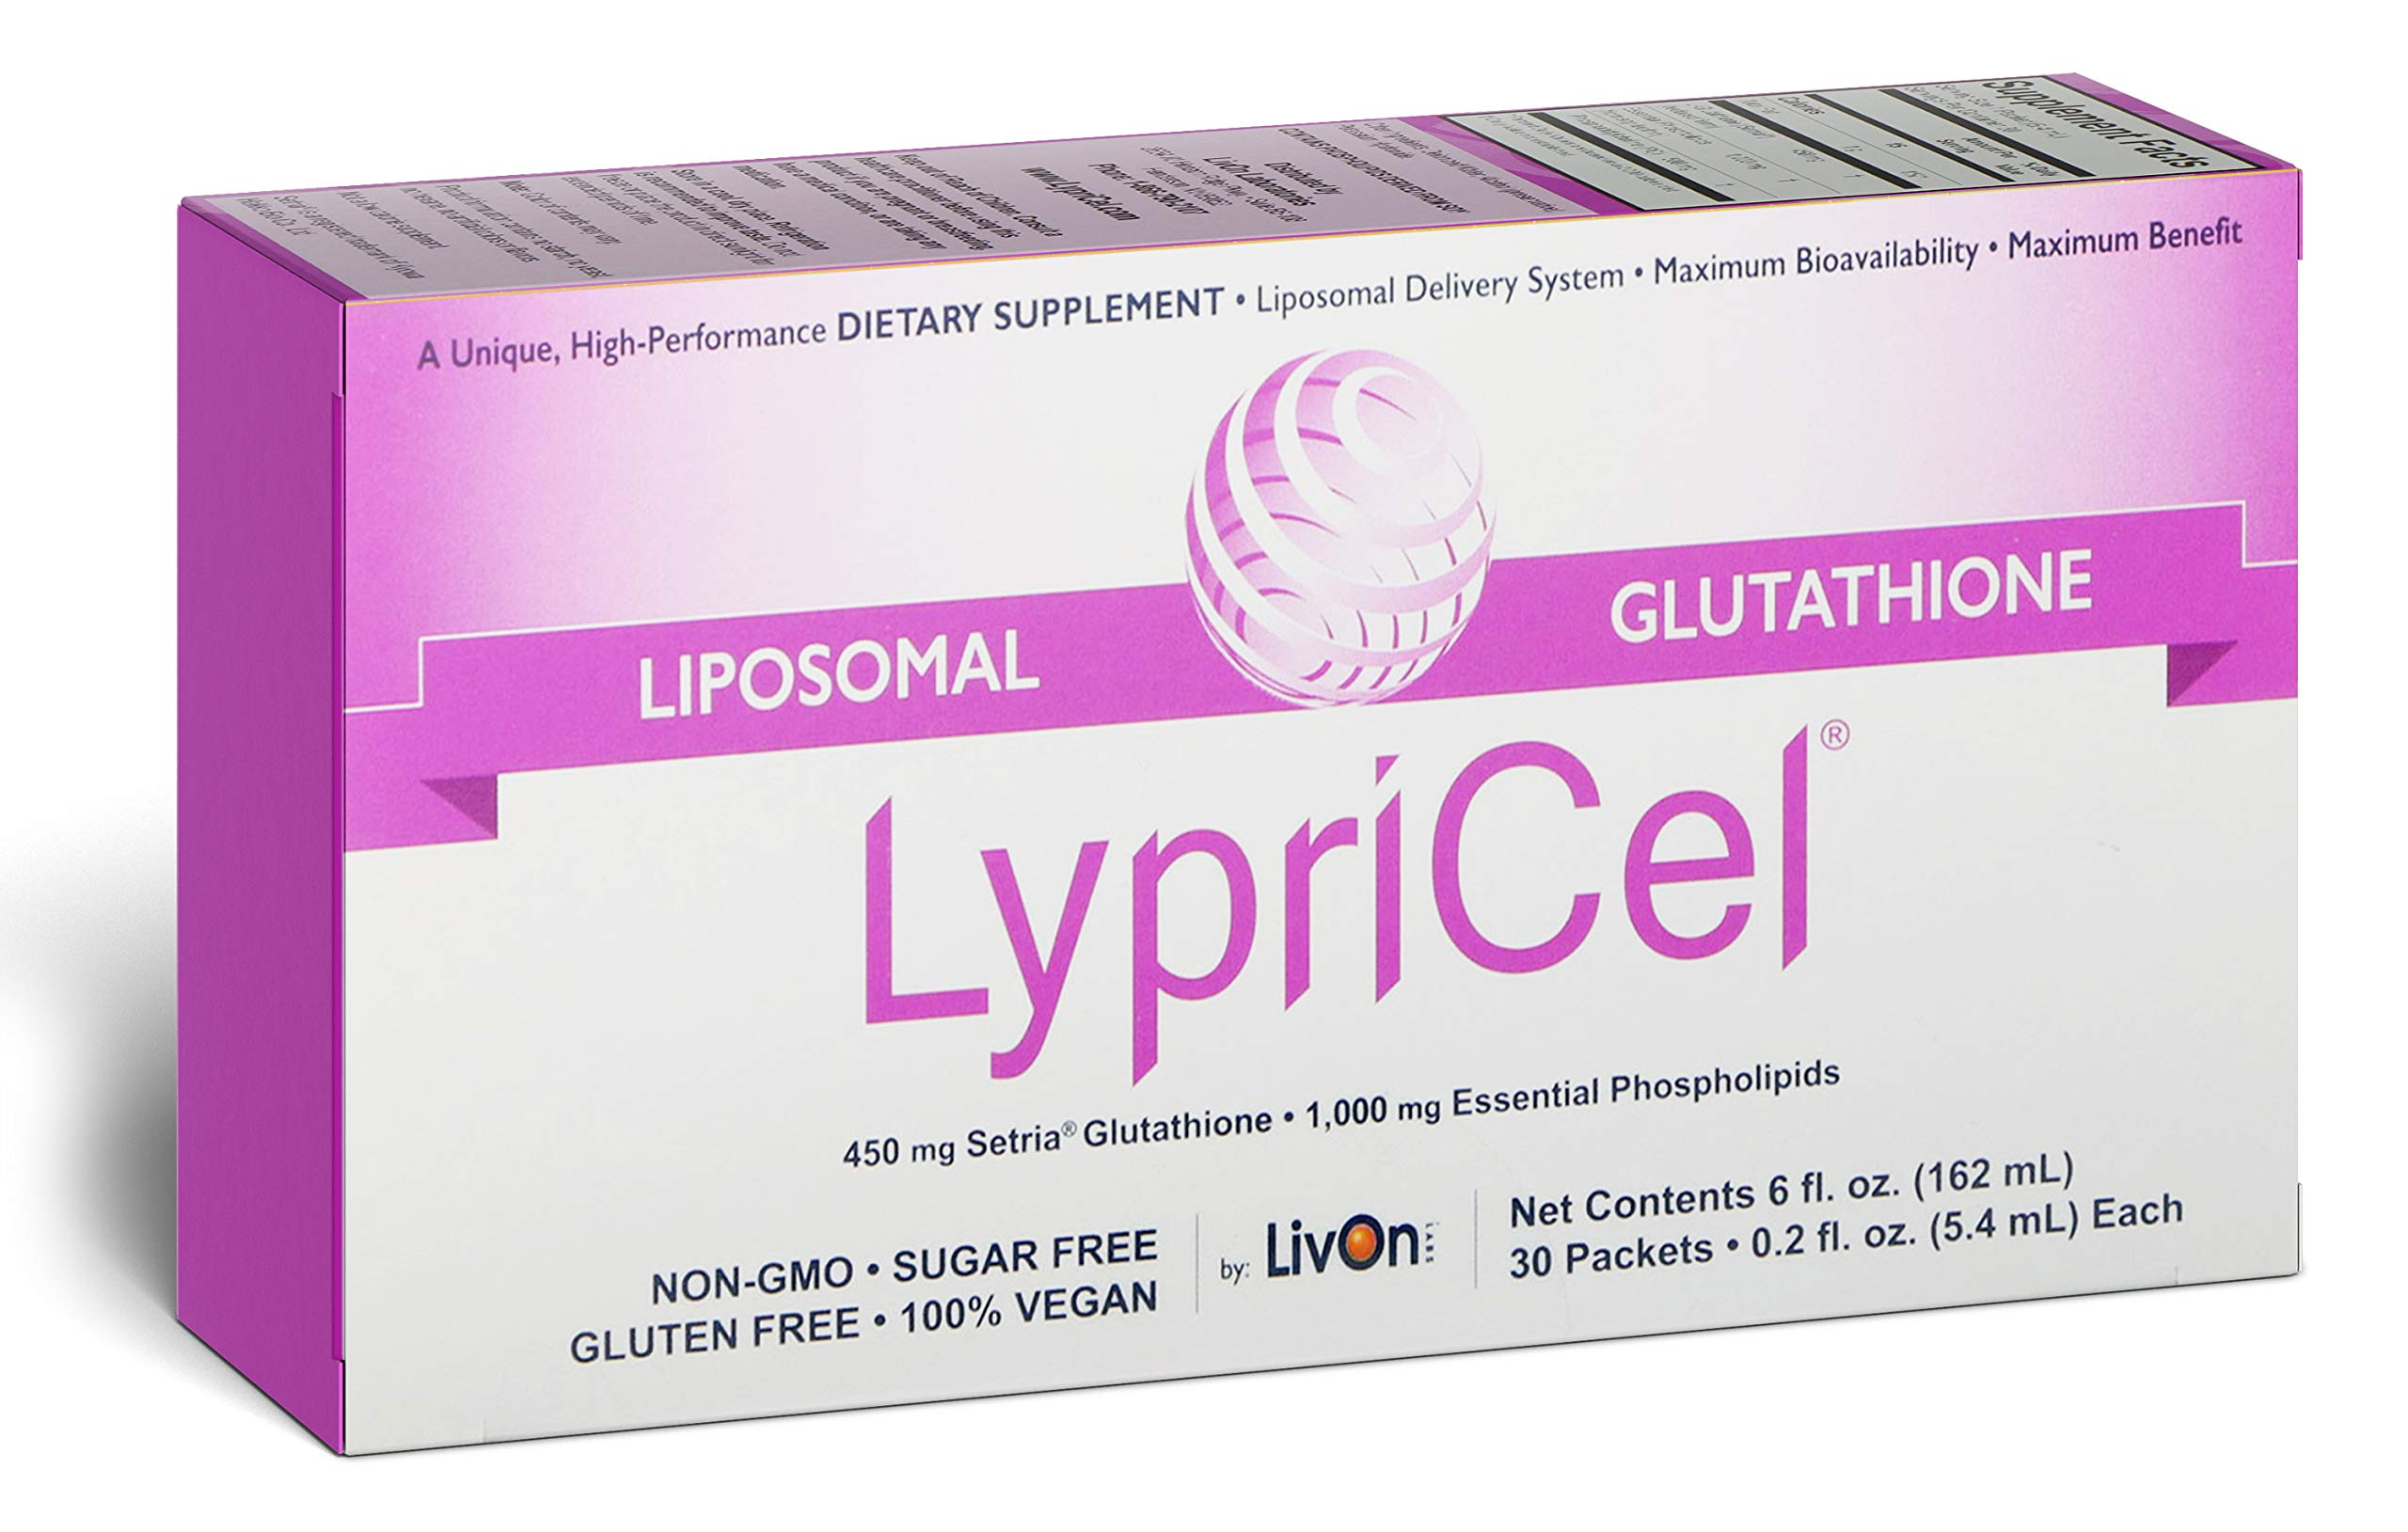 LypriCel Liposomal Glutathione - 30 Packets - 450 mg Glutathione Per Packet - Liposome Encapsulated for Maximum Bioavailability - 100% Non-GMO by Lypricel